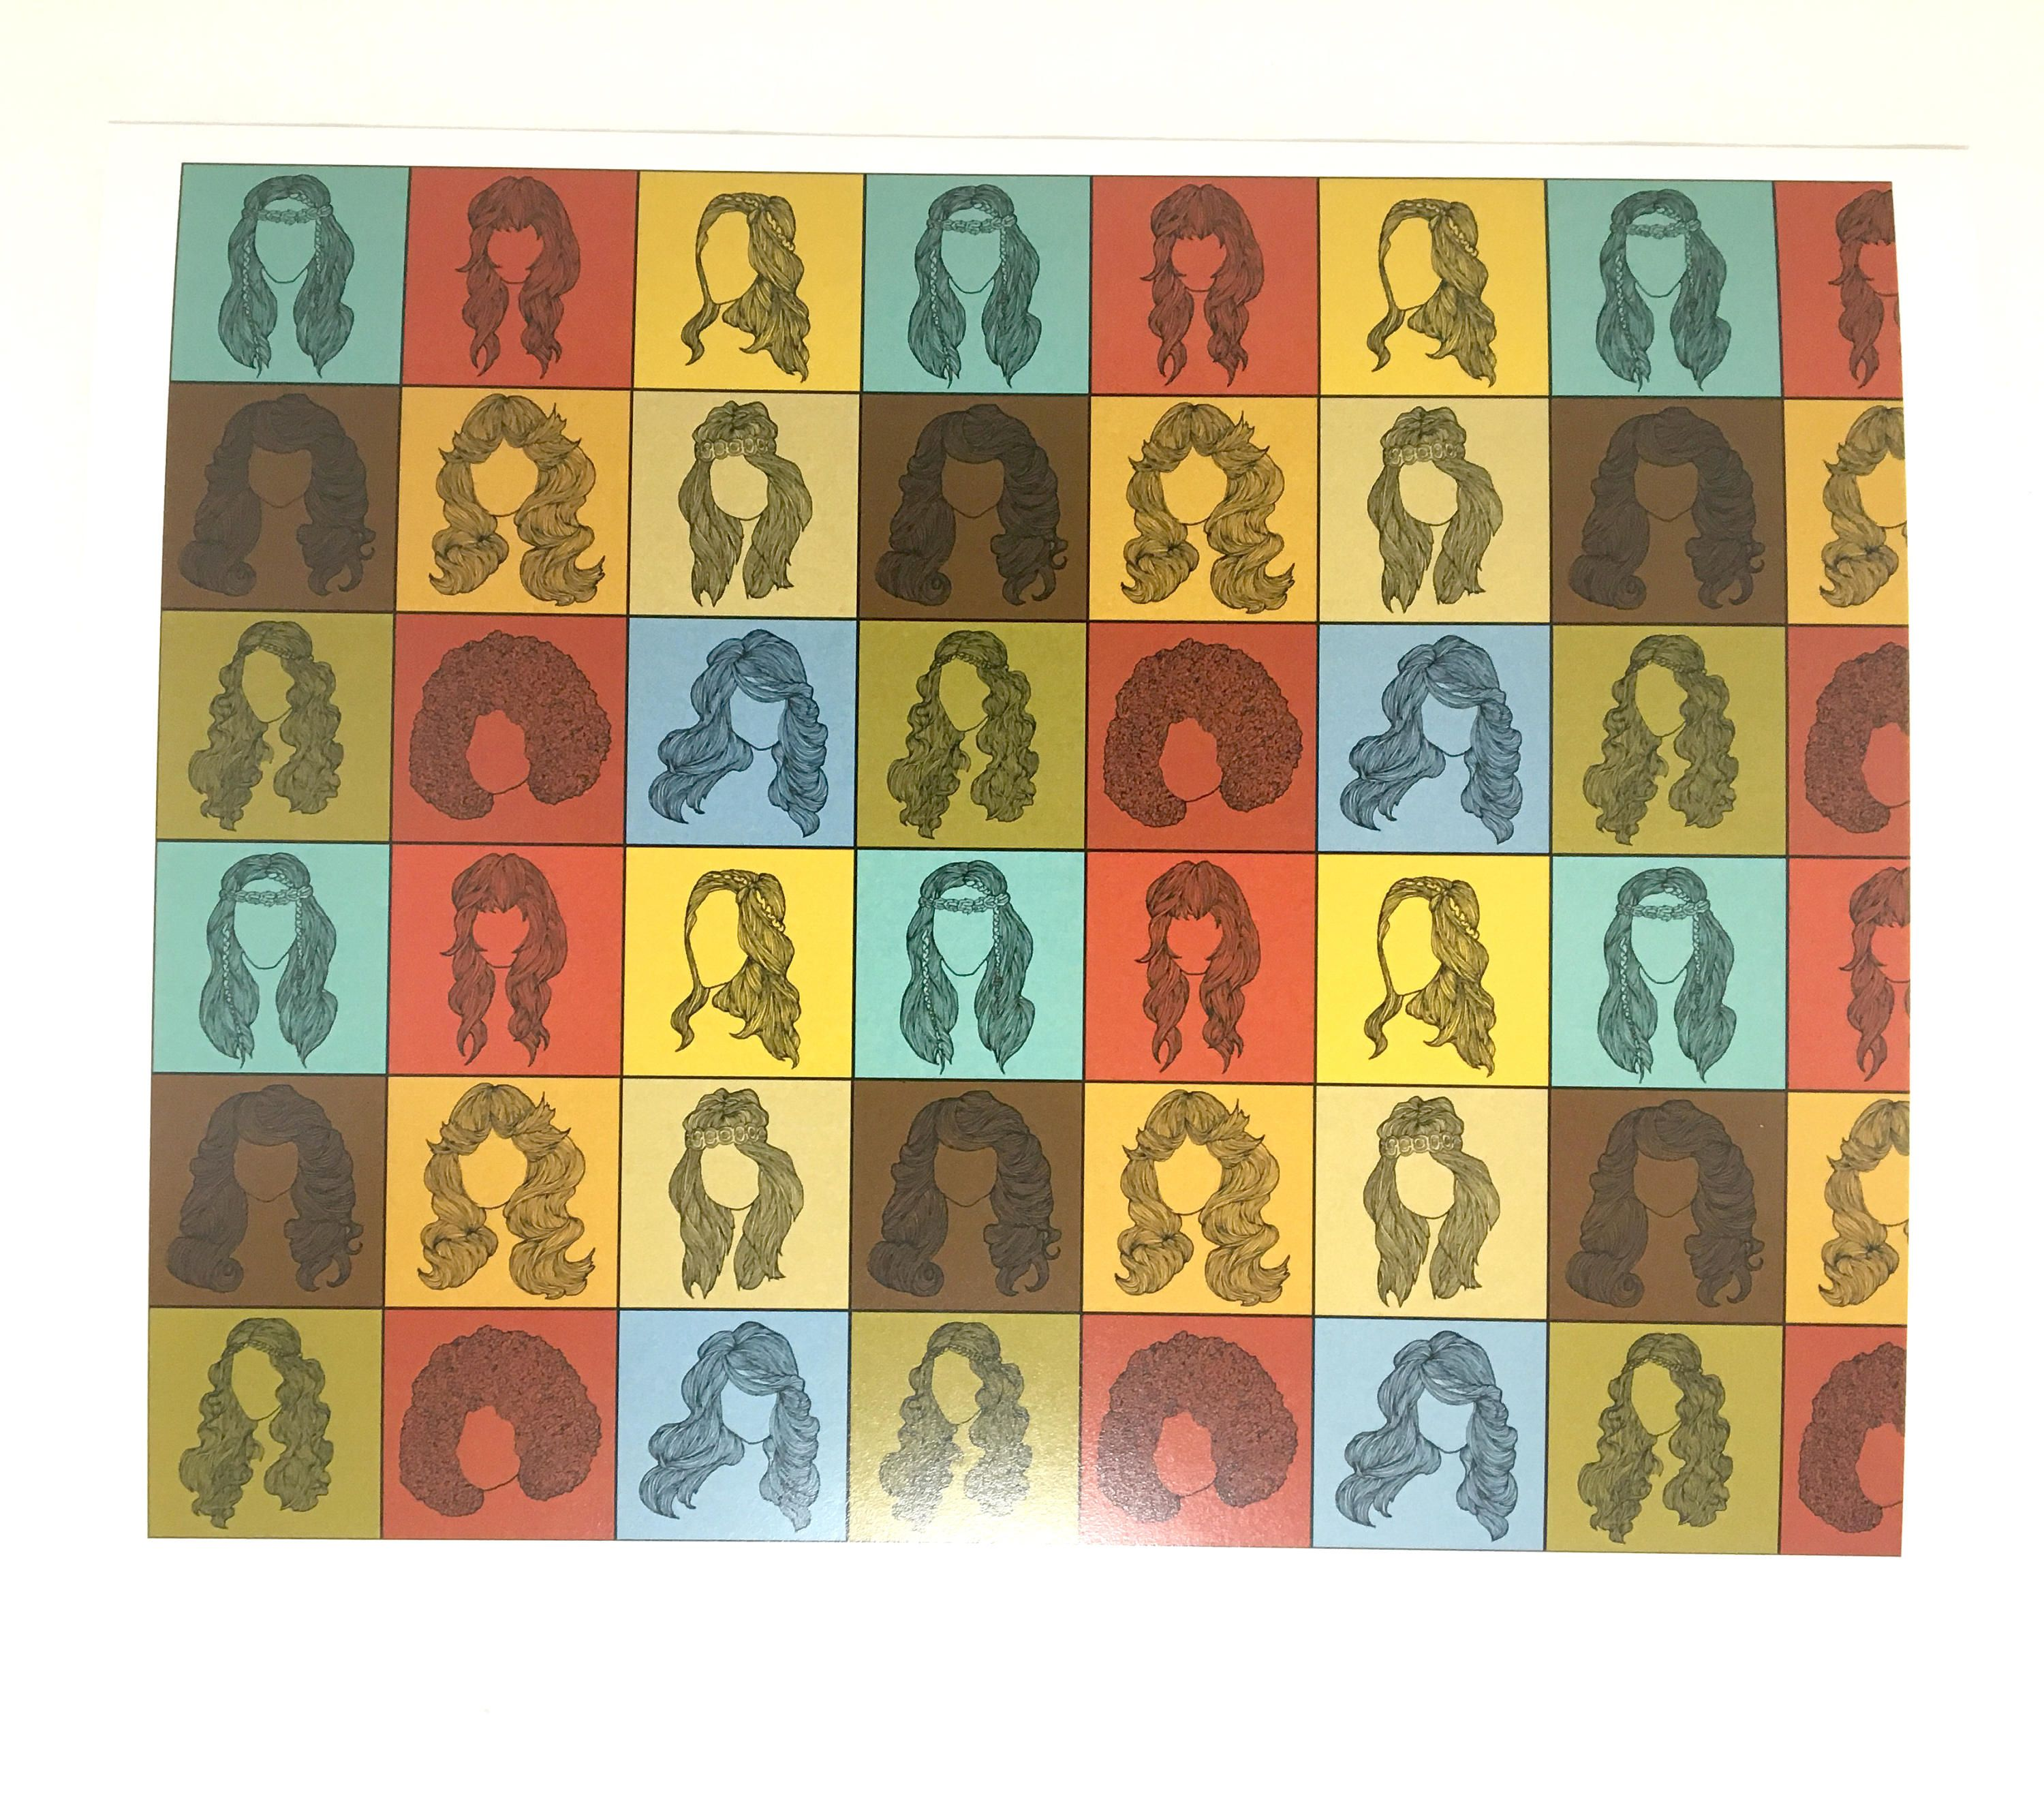 70s Hairstyles Tiled Art, Checkered 1970s Retro Wall Art, 70s Themed ...